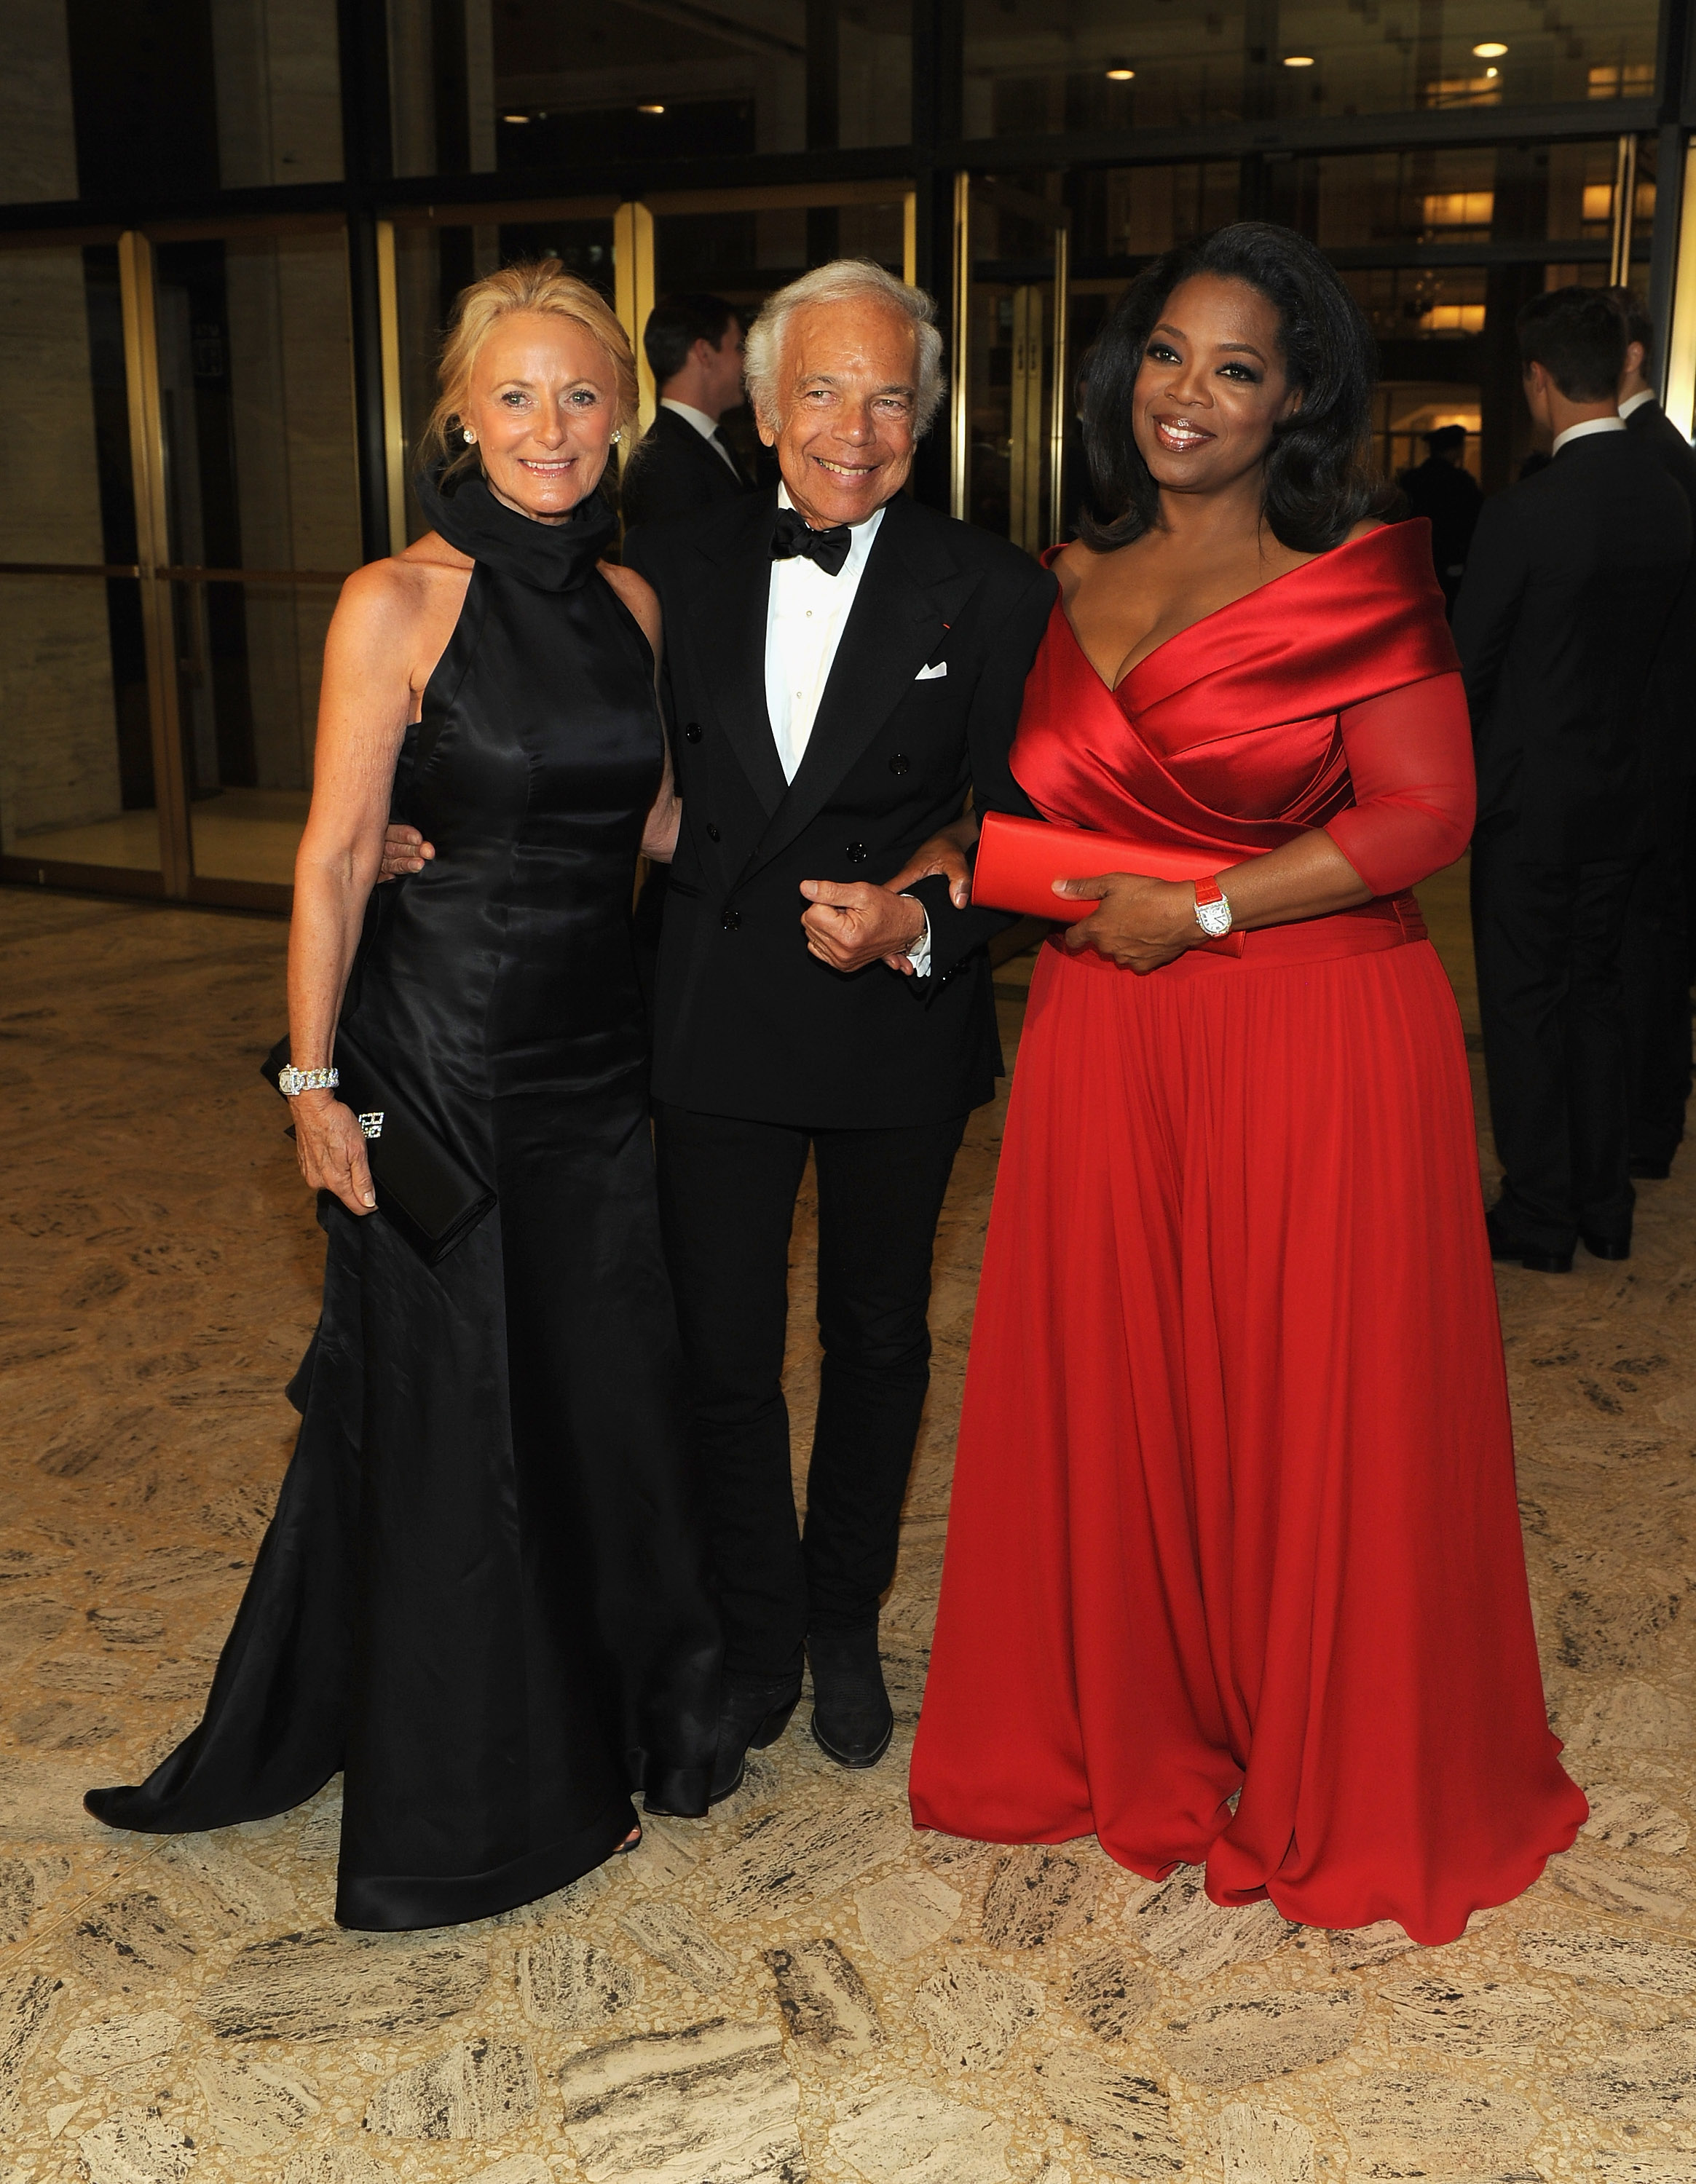 Ralph and Ricky Lauren posed for photos with Oprah.